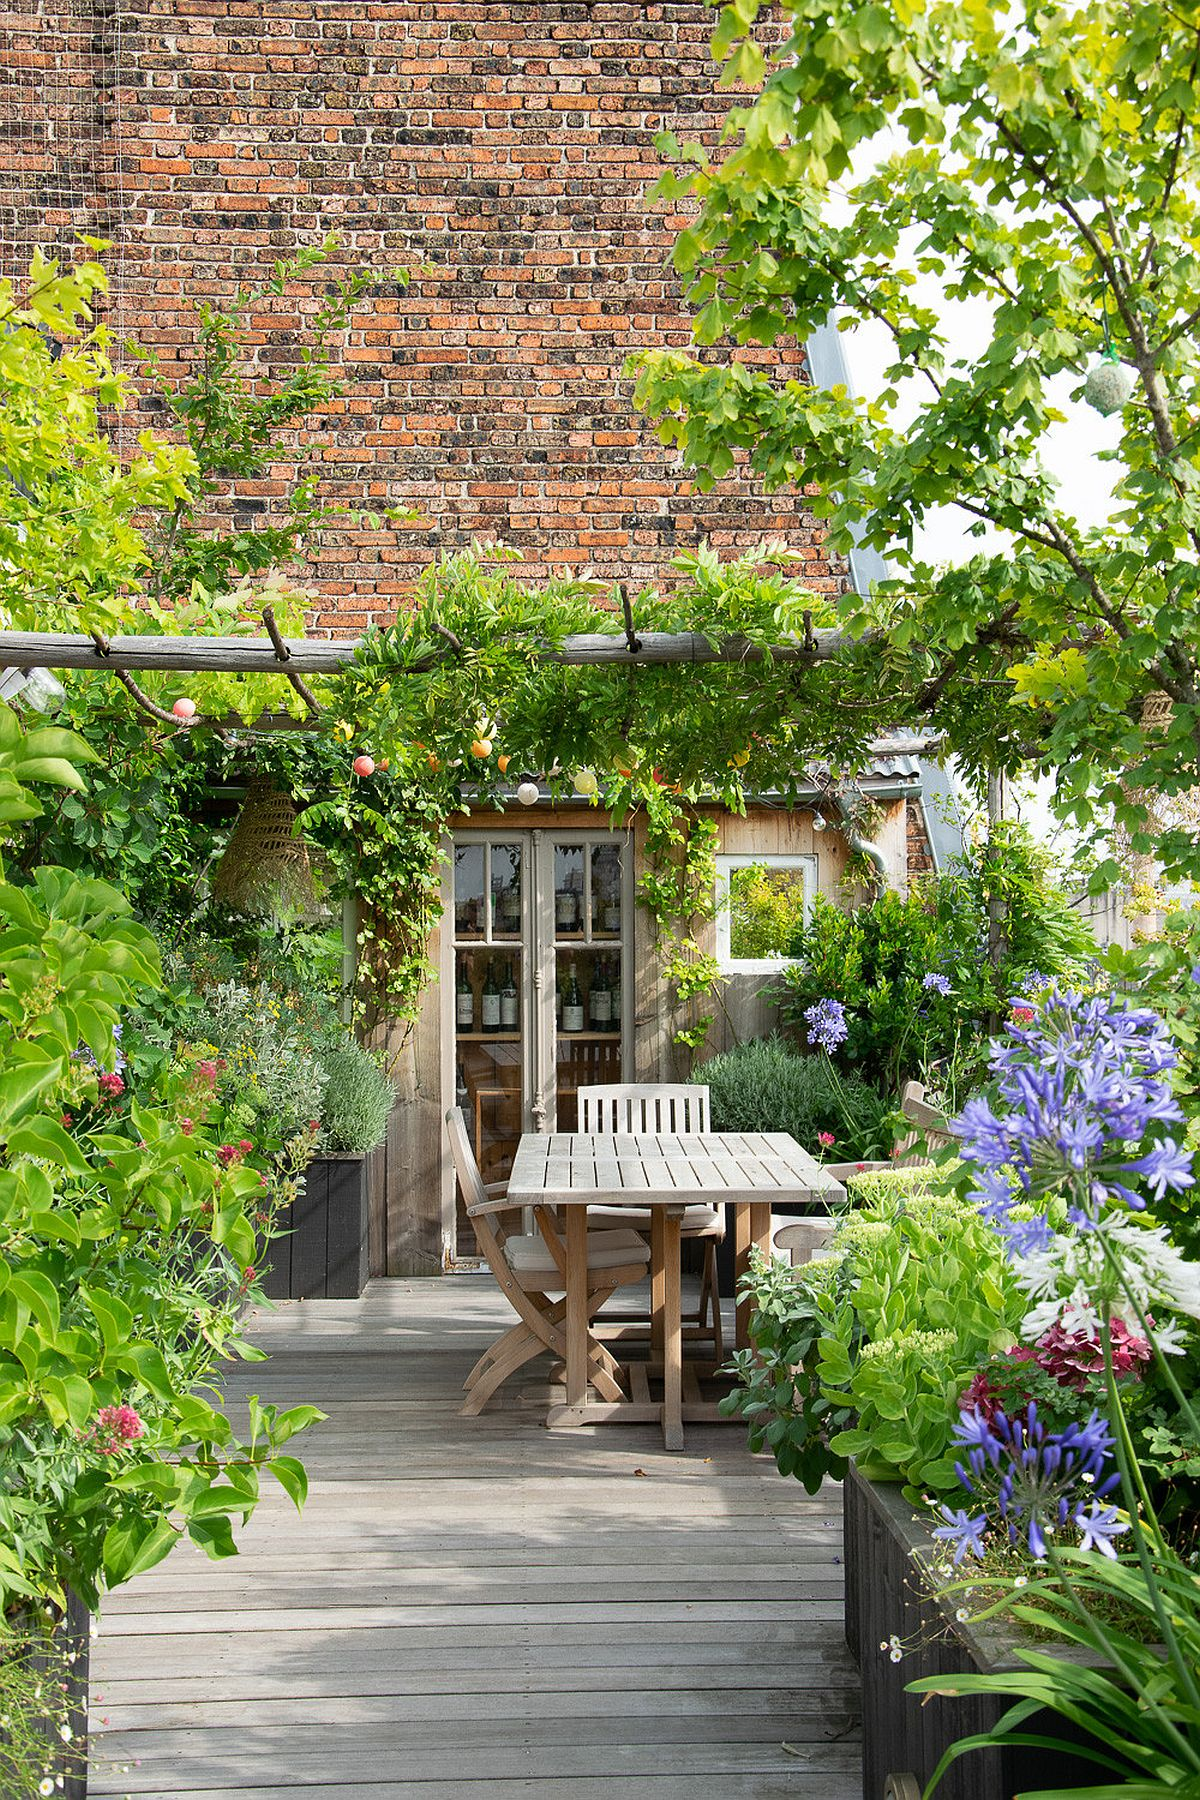 Delightful deck of Paris home with small dining space and a captivating space all around